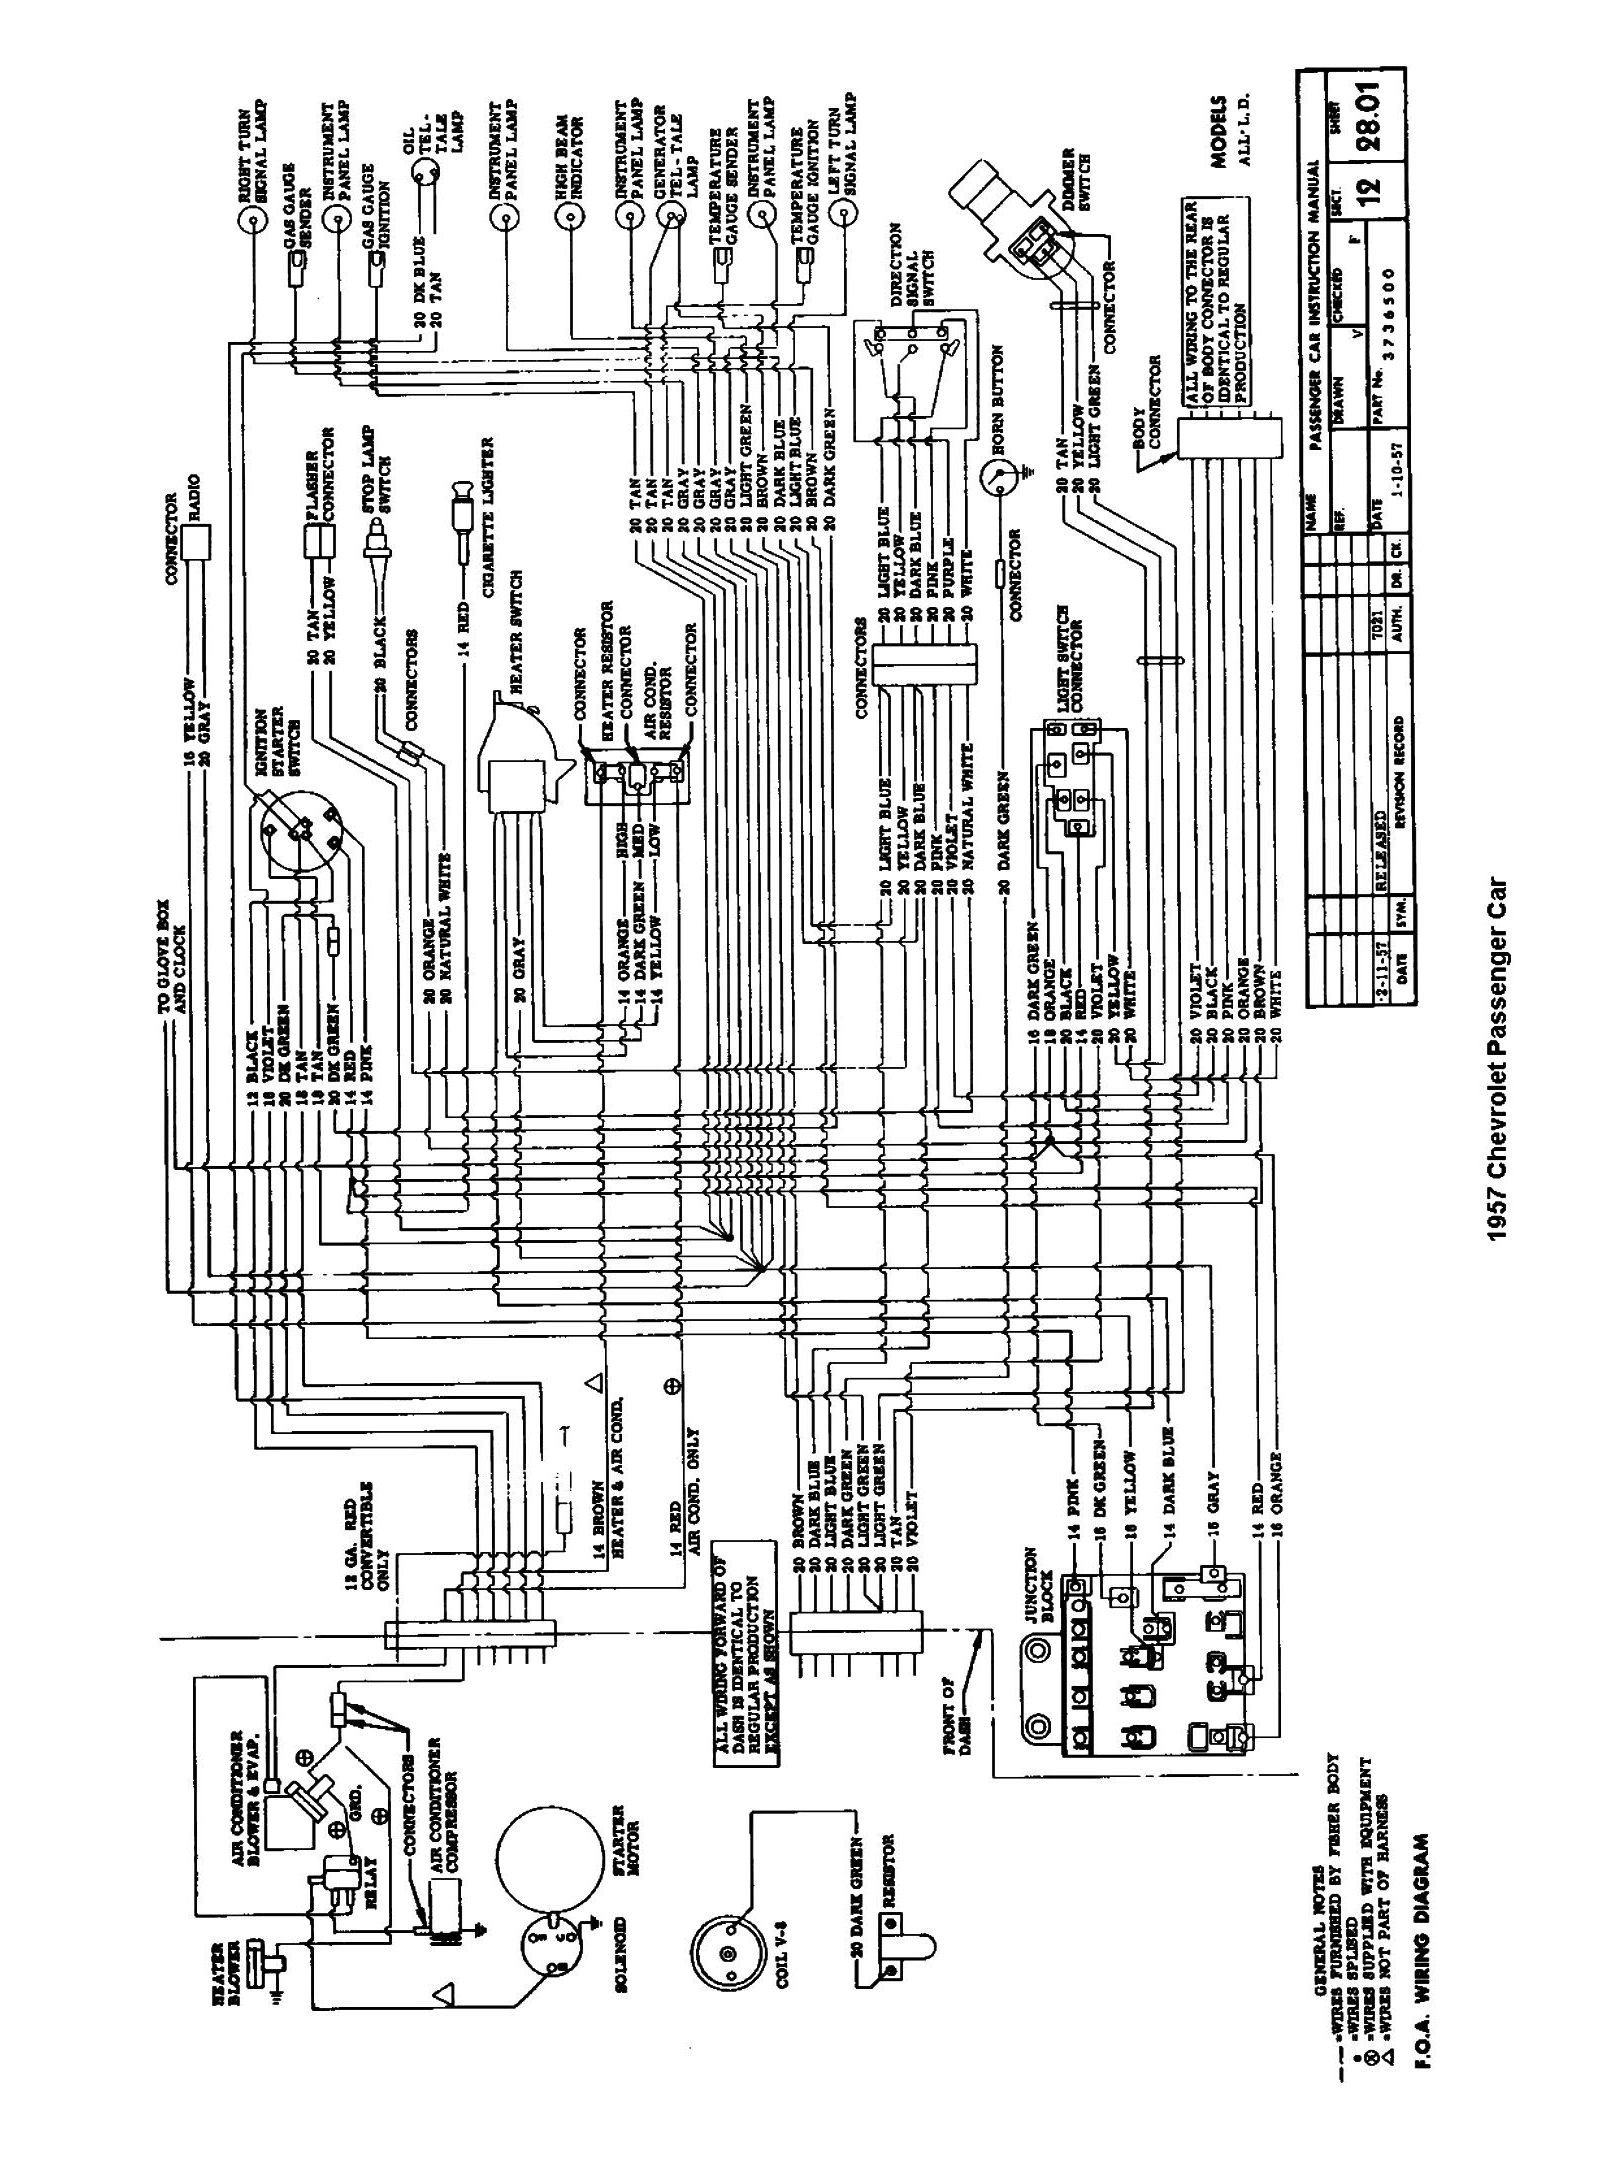 hight resolution of 1957 chevy wiring schematics wiring diagram portal 57 chevy fuel pump 57 chevy under hood wiring